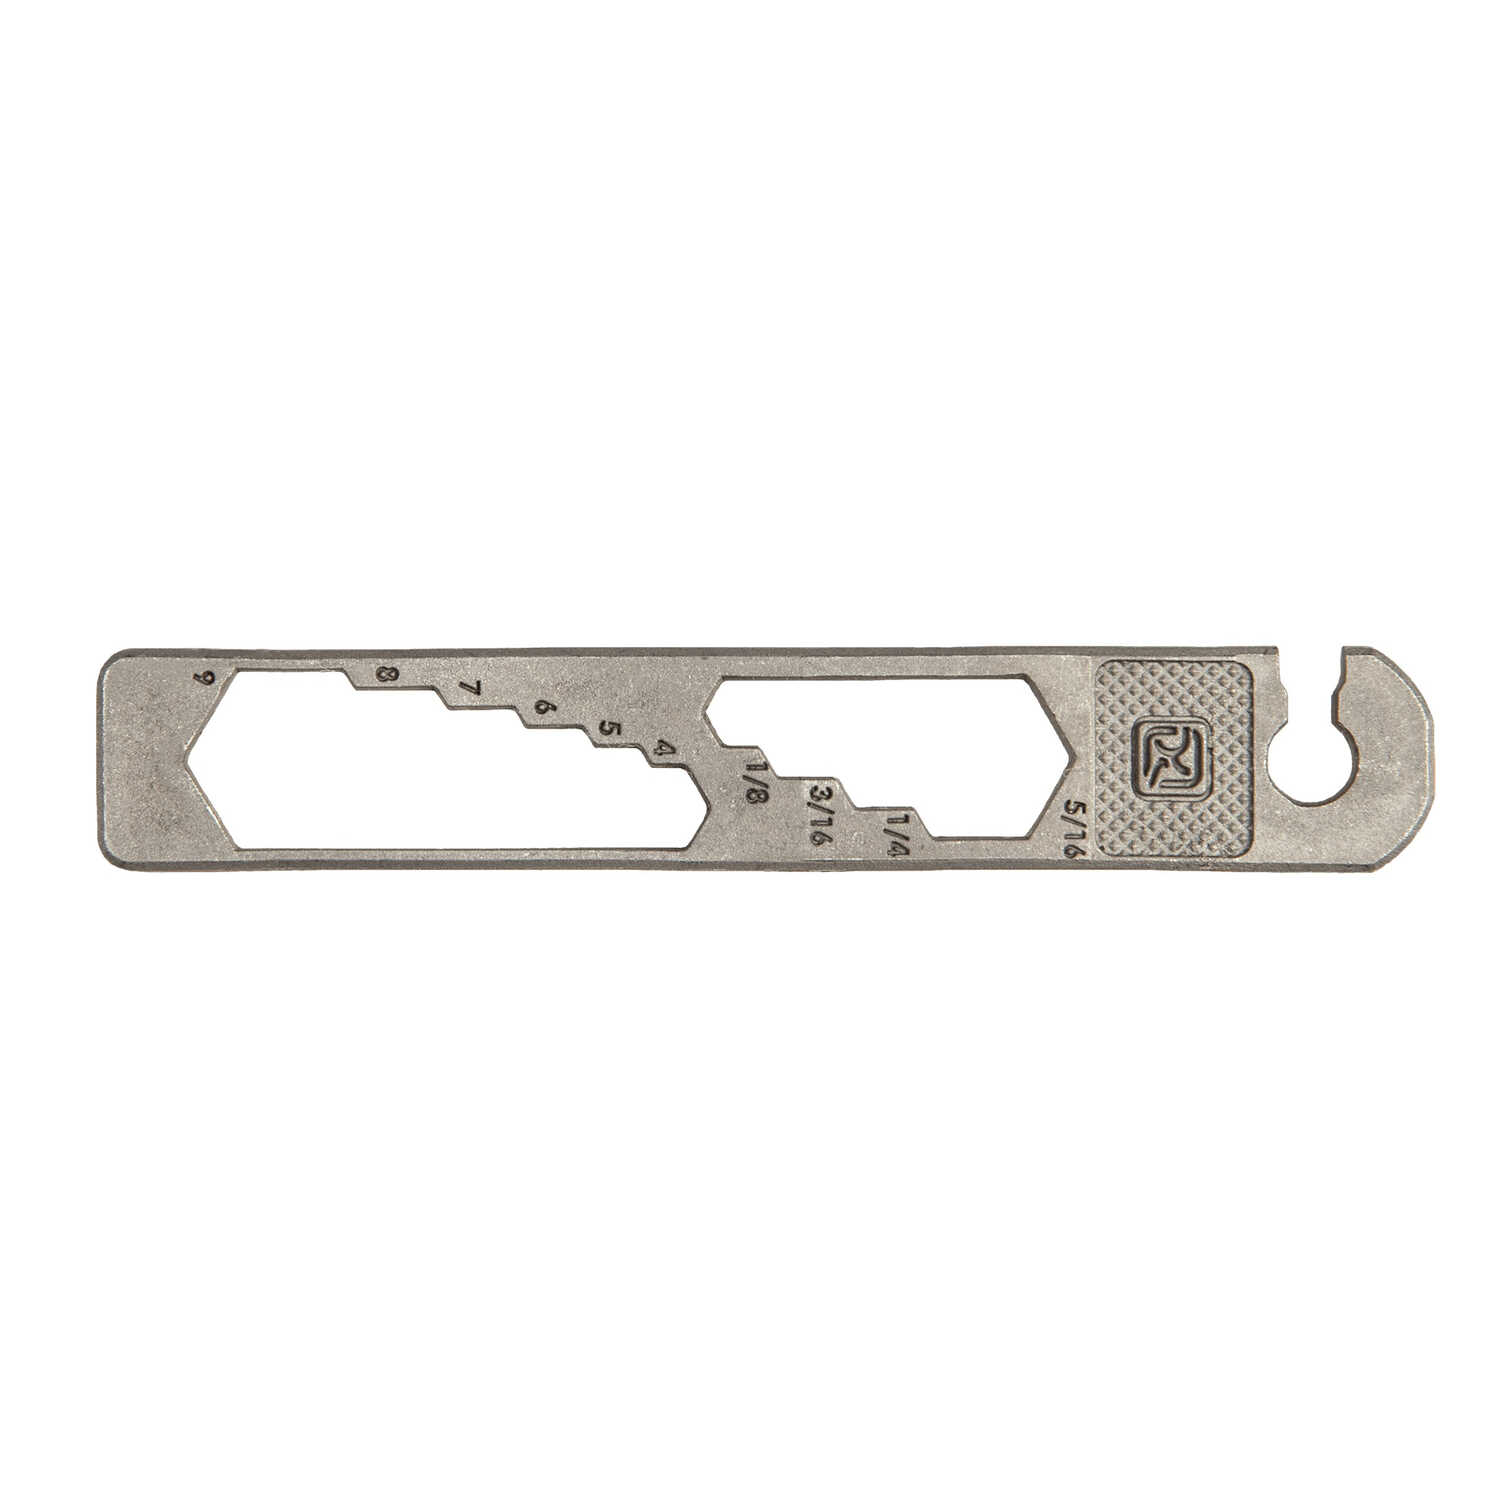 Klecker Knives  Stowaway Tools  Every day carry tool  Metric and SAE  Wrench  2.62 in. 1 pc.